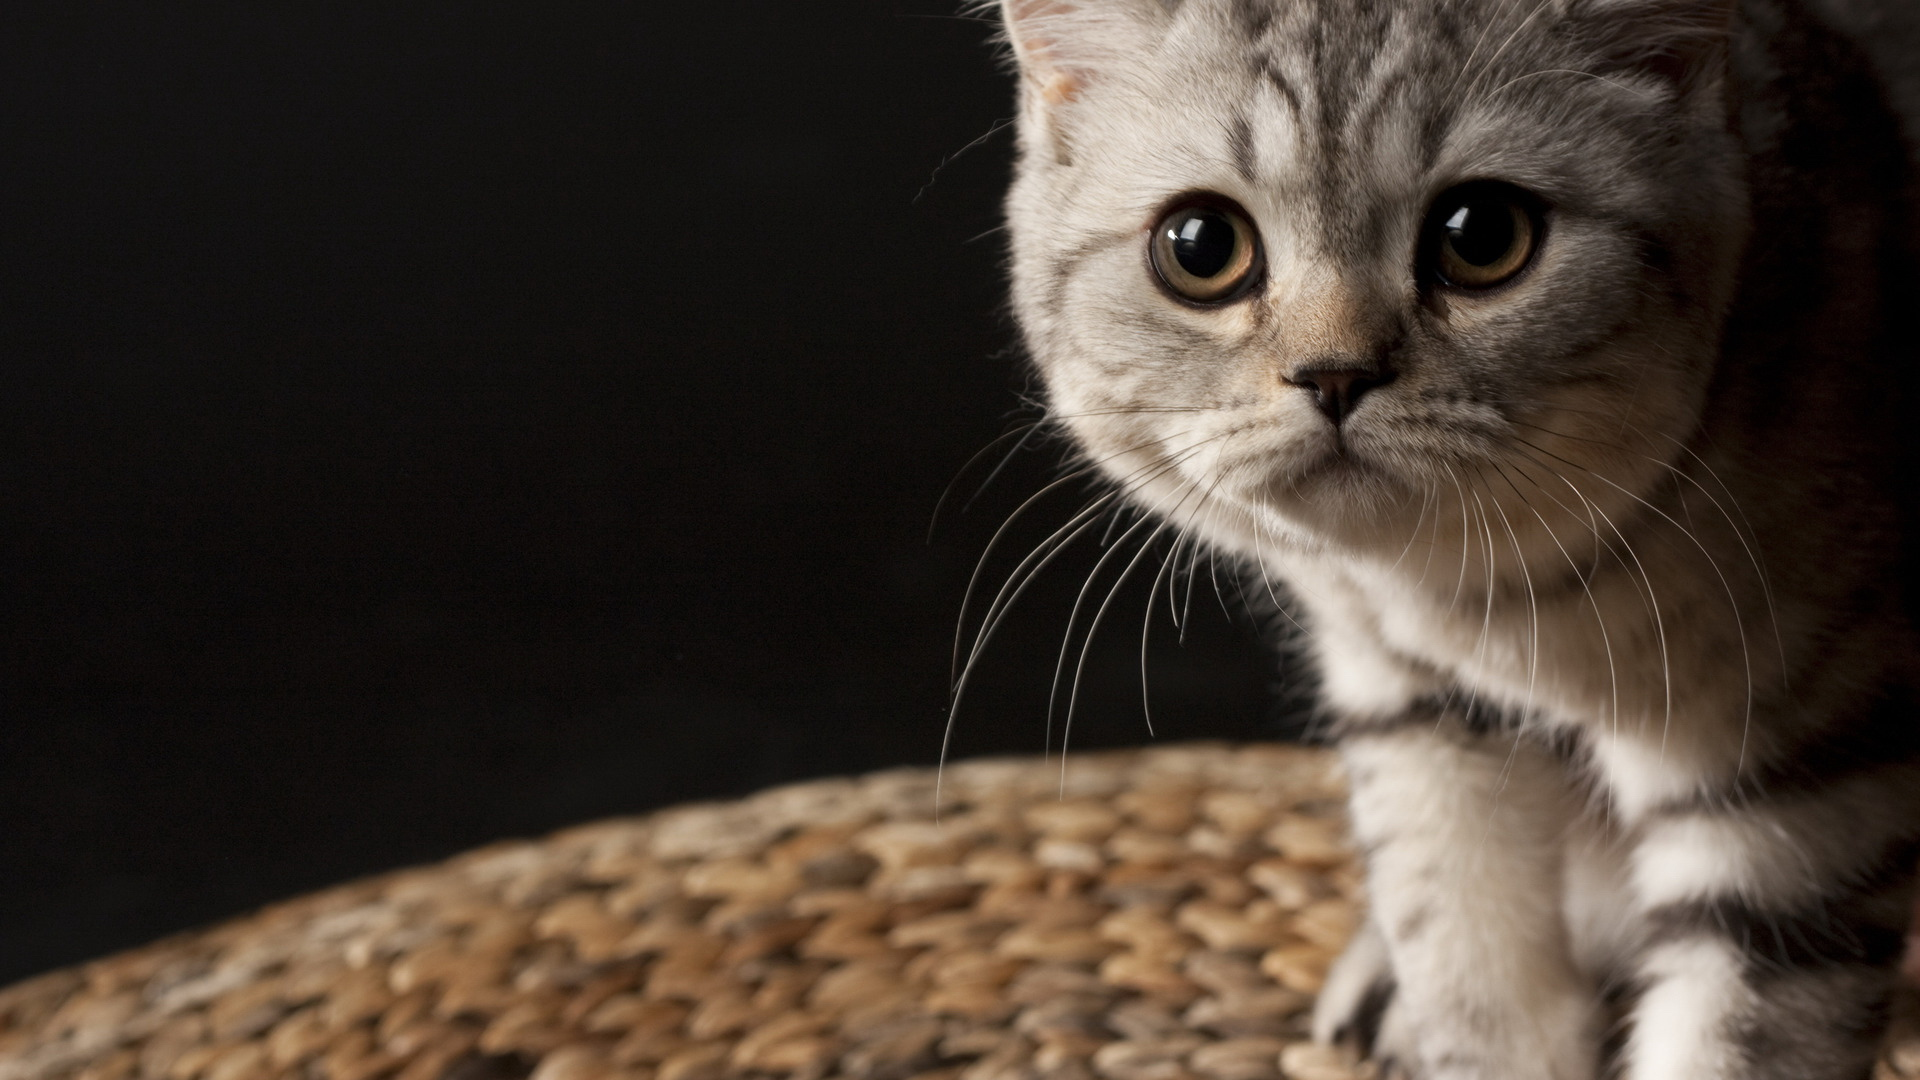 Silver-Tabby-CUTE-CATS-Pinterest-Tabby-cats-Cat-and-wallpaper-wpc5808750